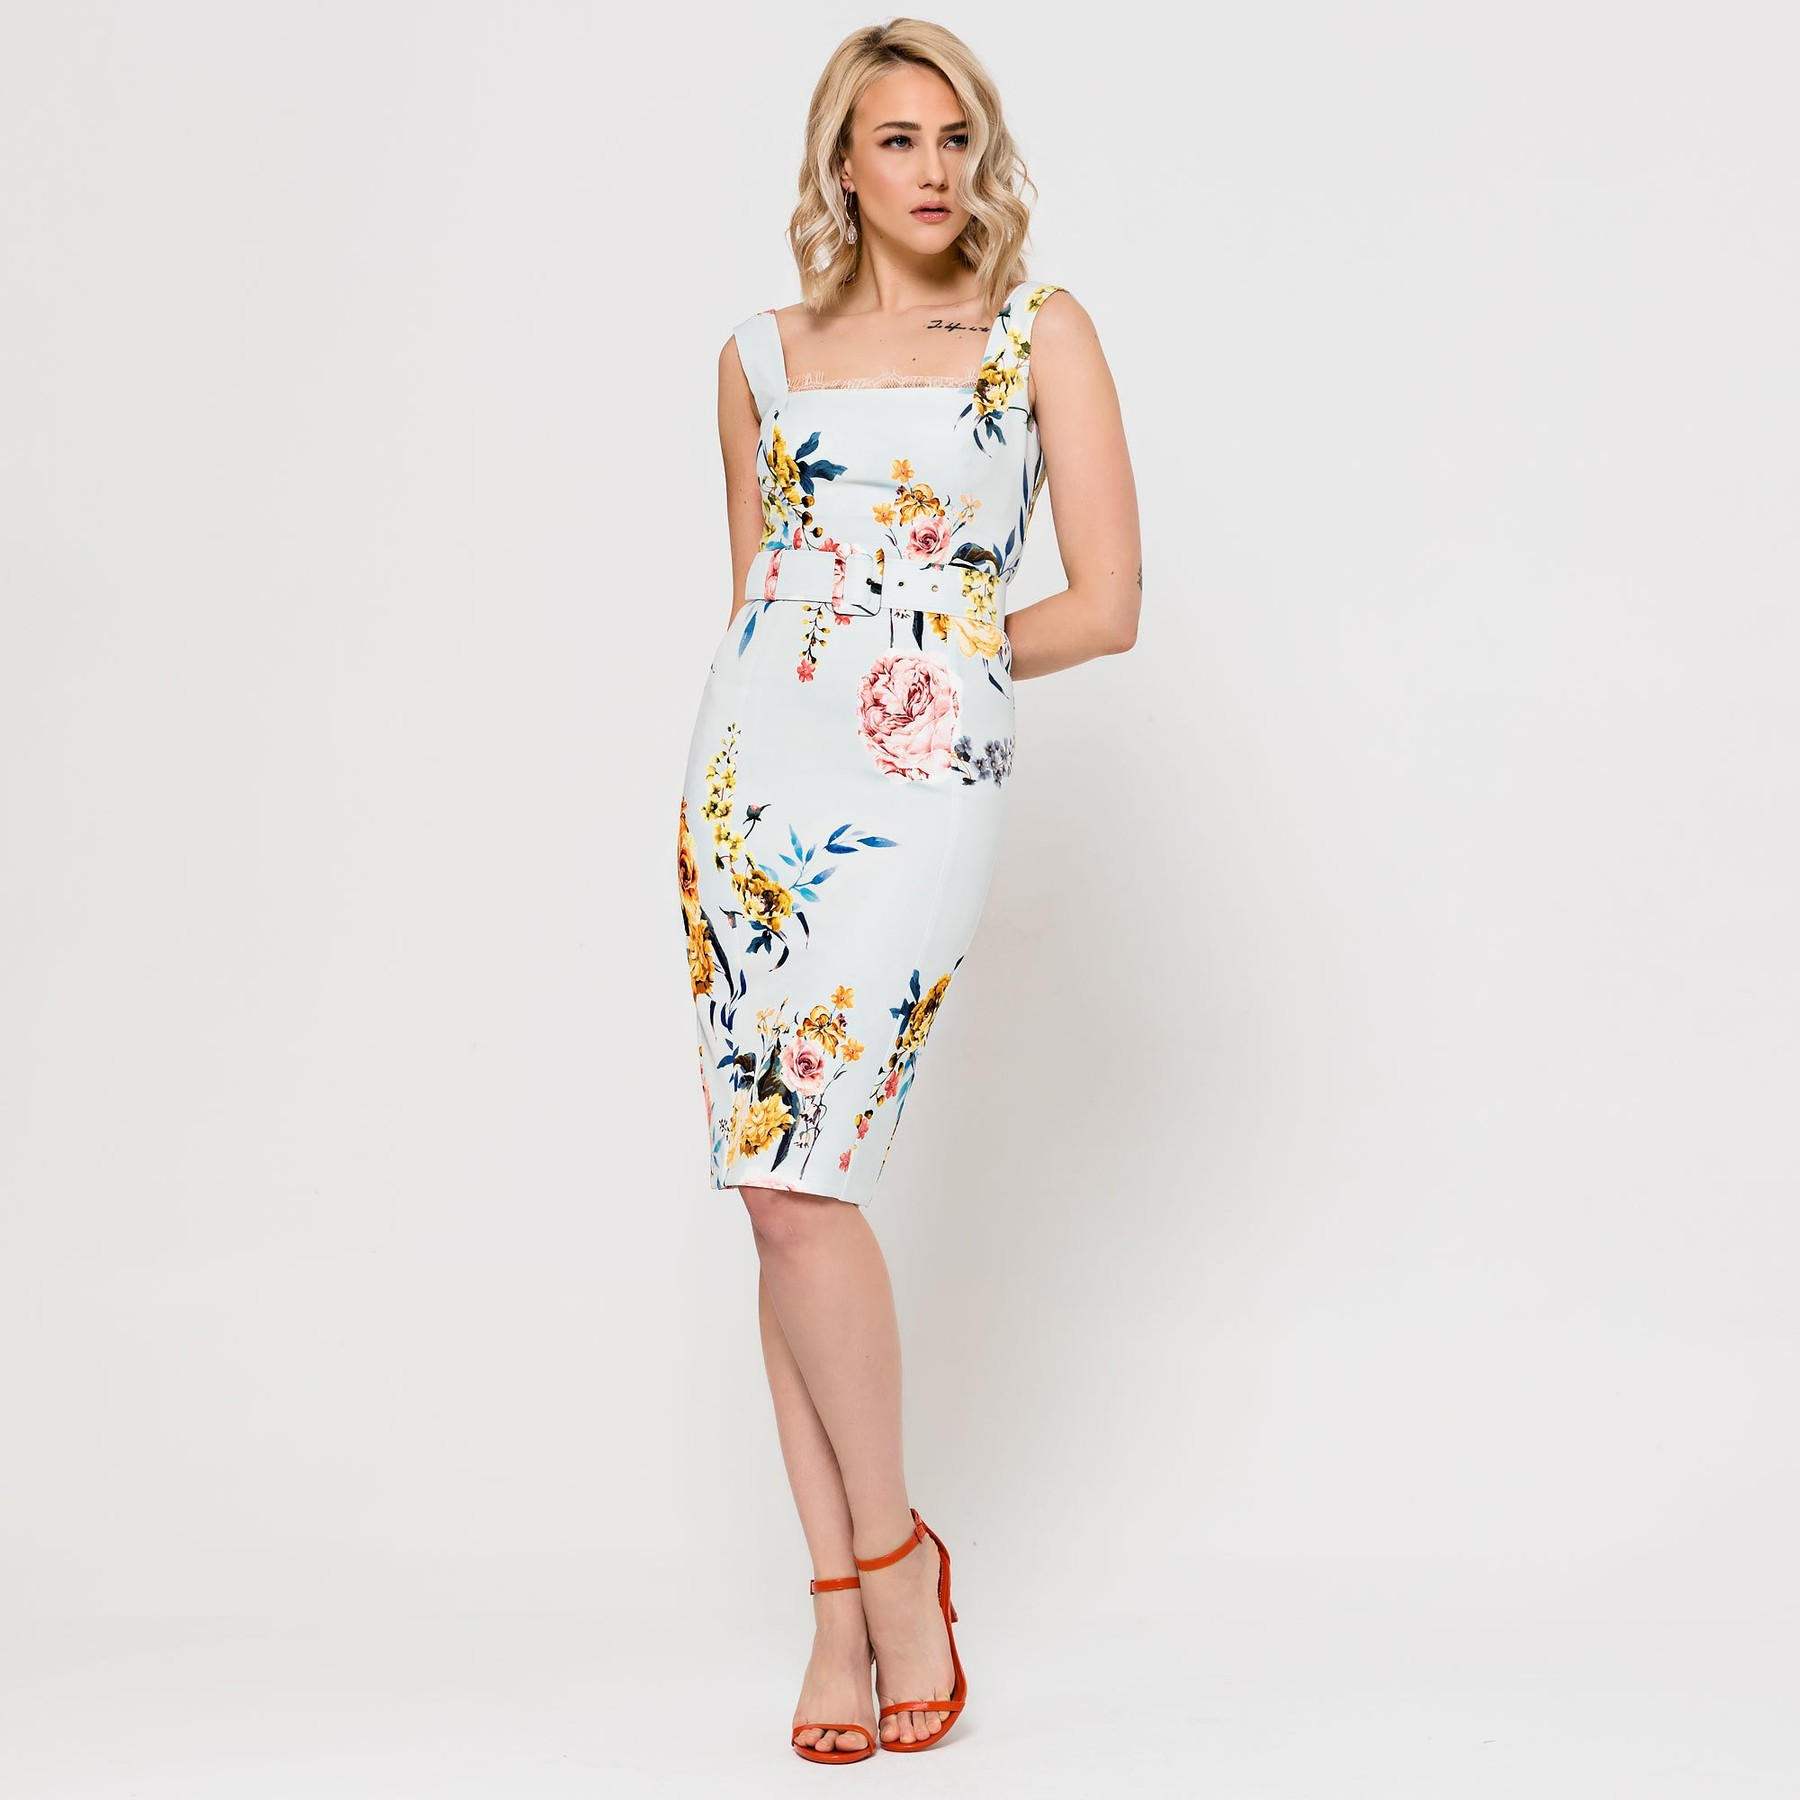 Floral Dress with Square Neckline ACCDRFLORAL3060